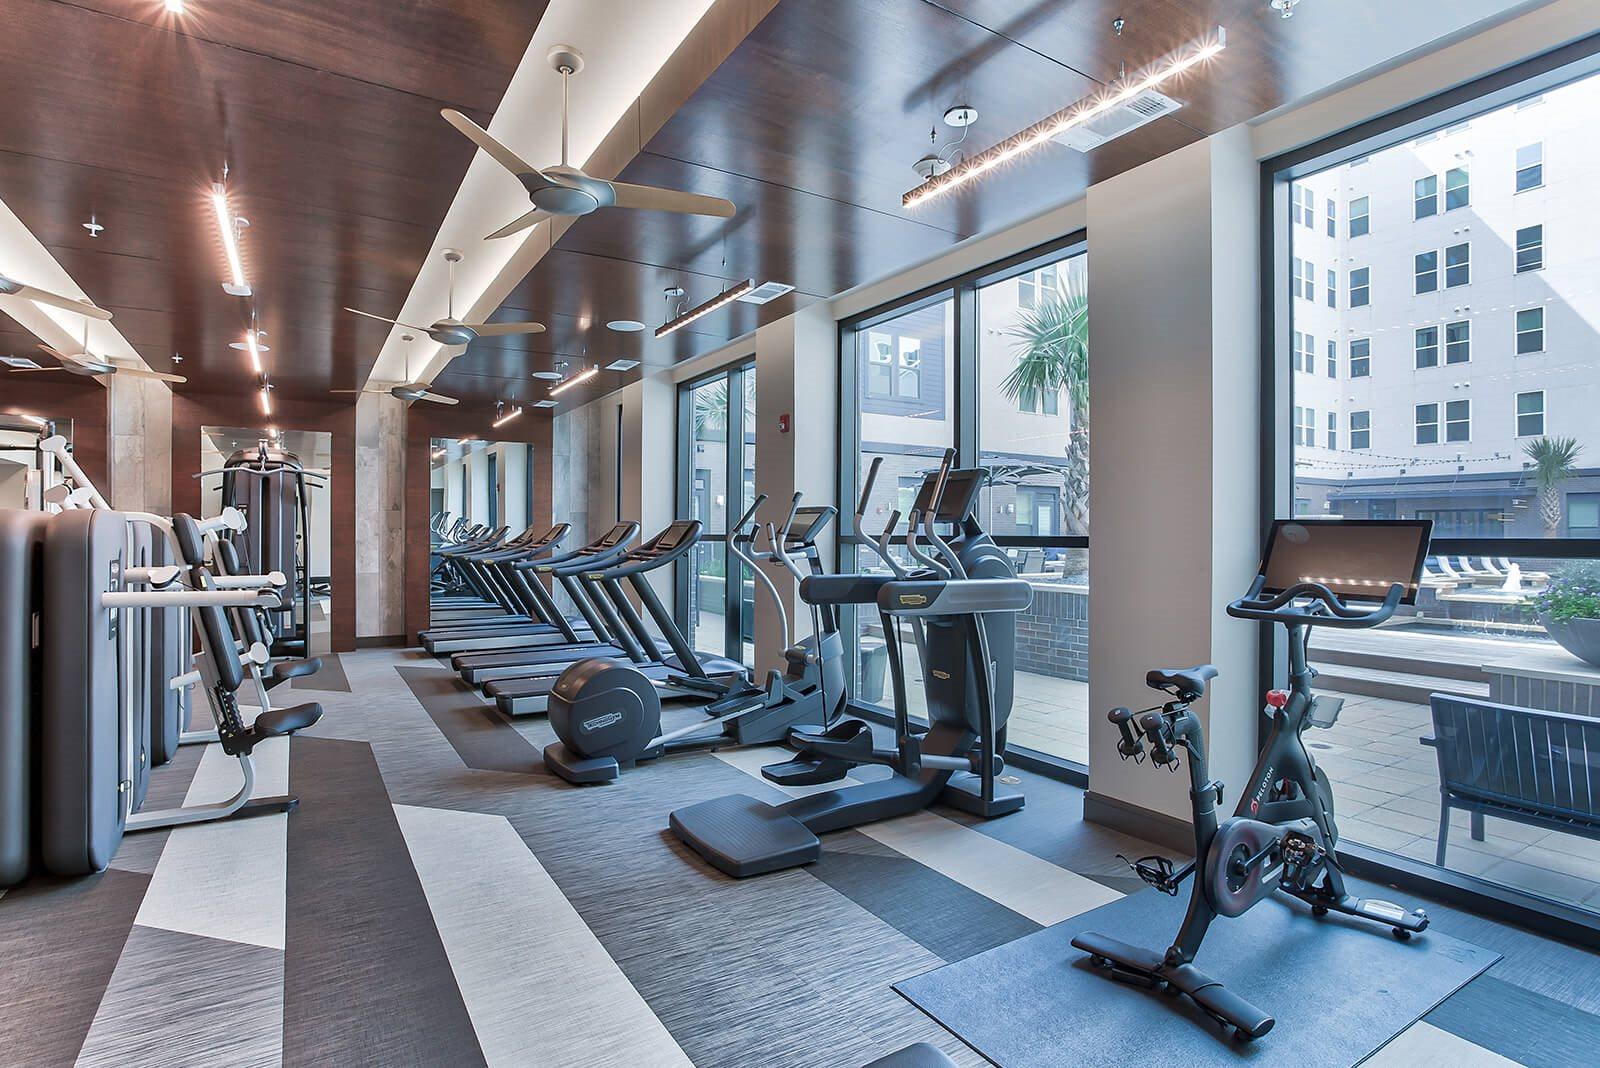 TechnoGym Equipped, European Spa-Inspired Fitness Studio at Windsor Turtle Creek, Texas